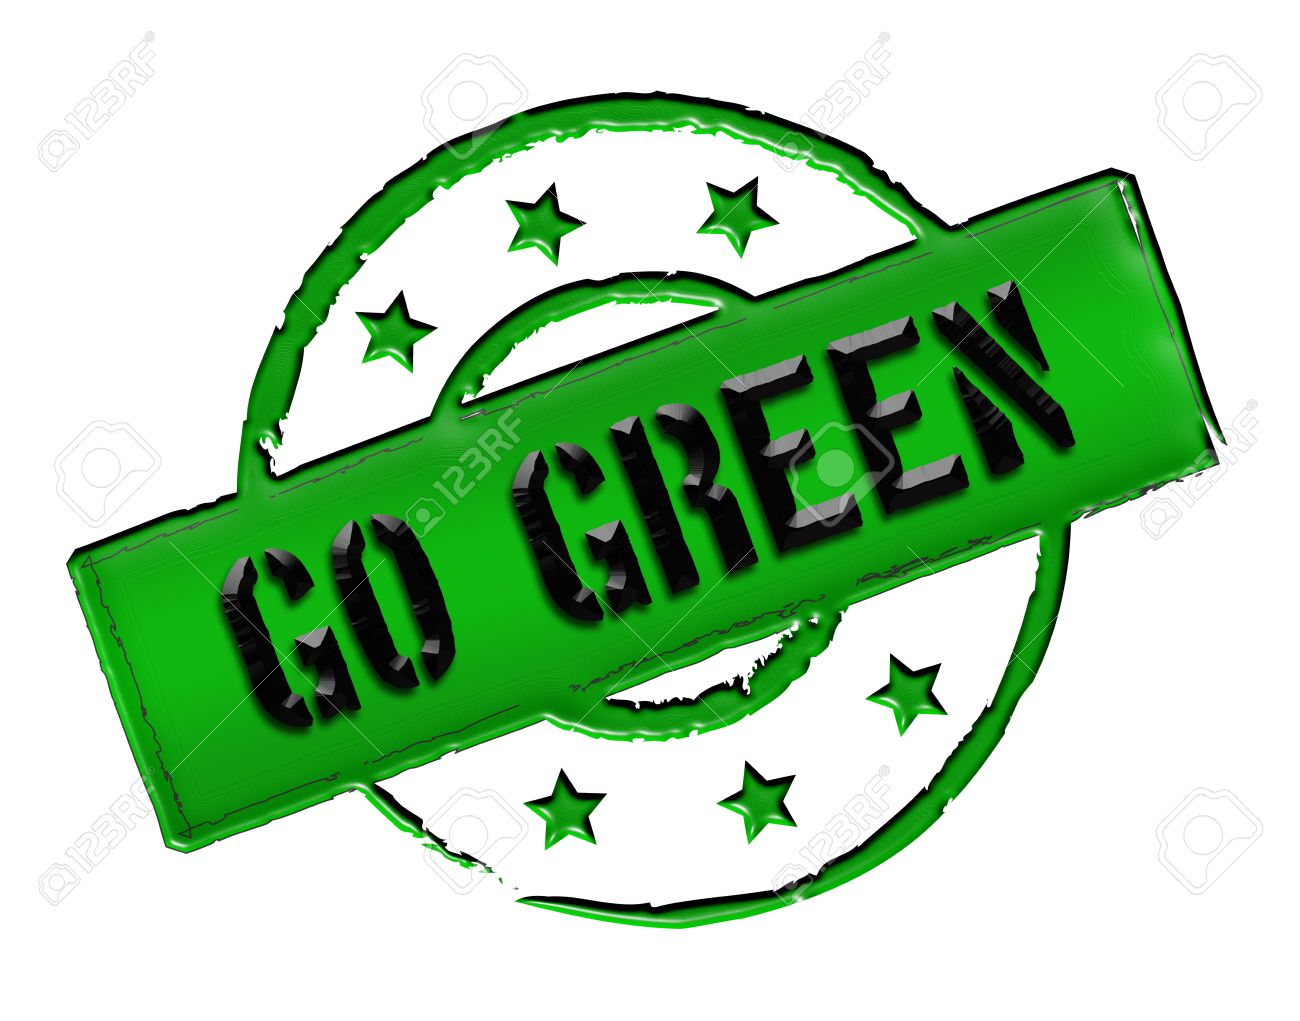 Green Go Sign.